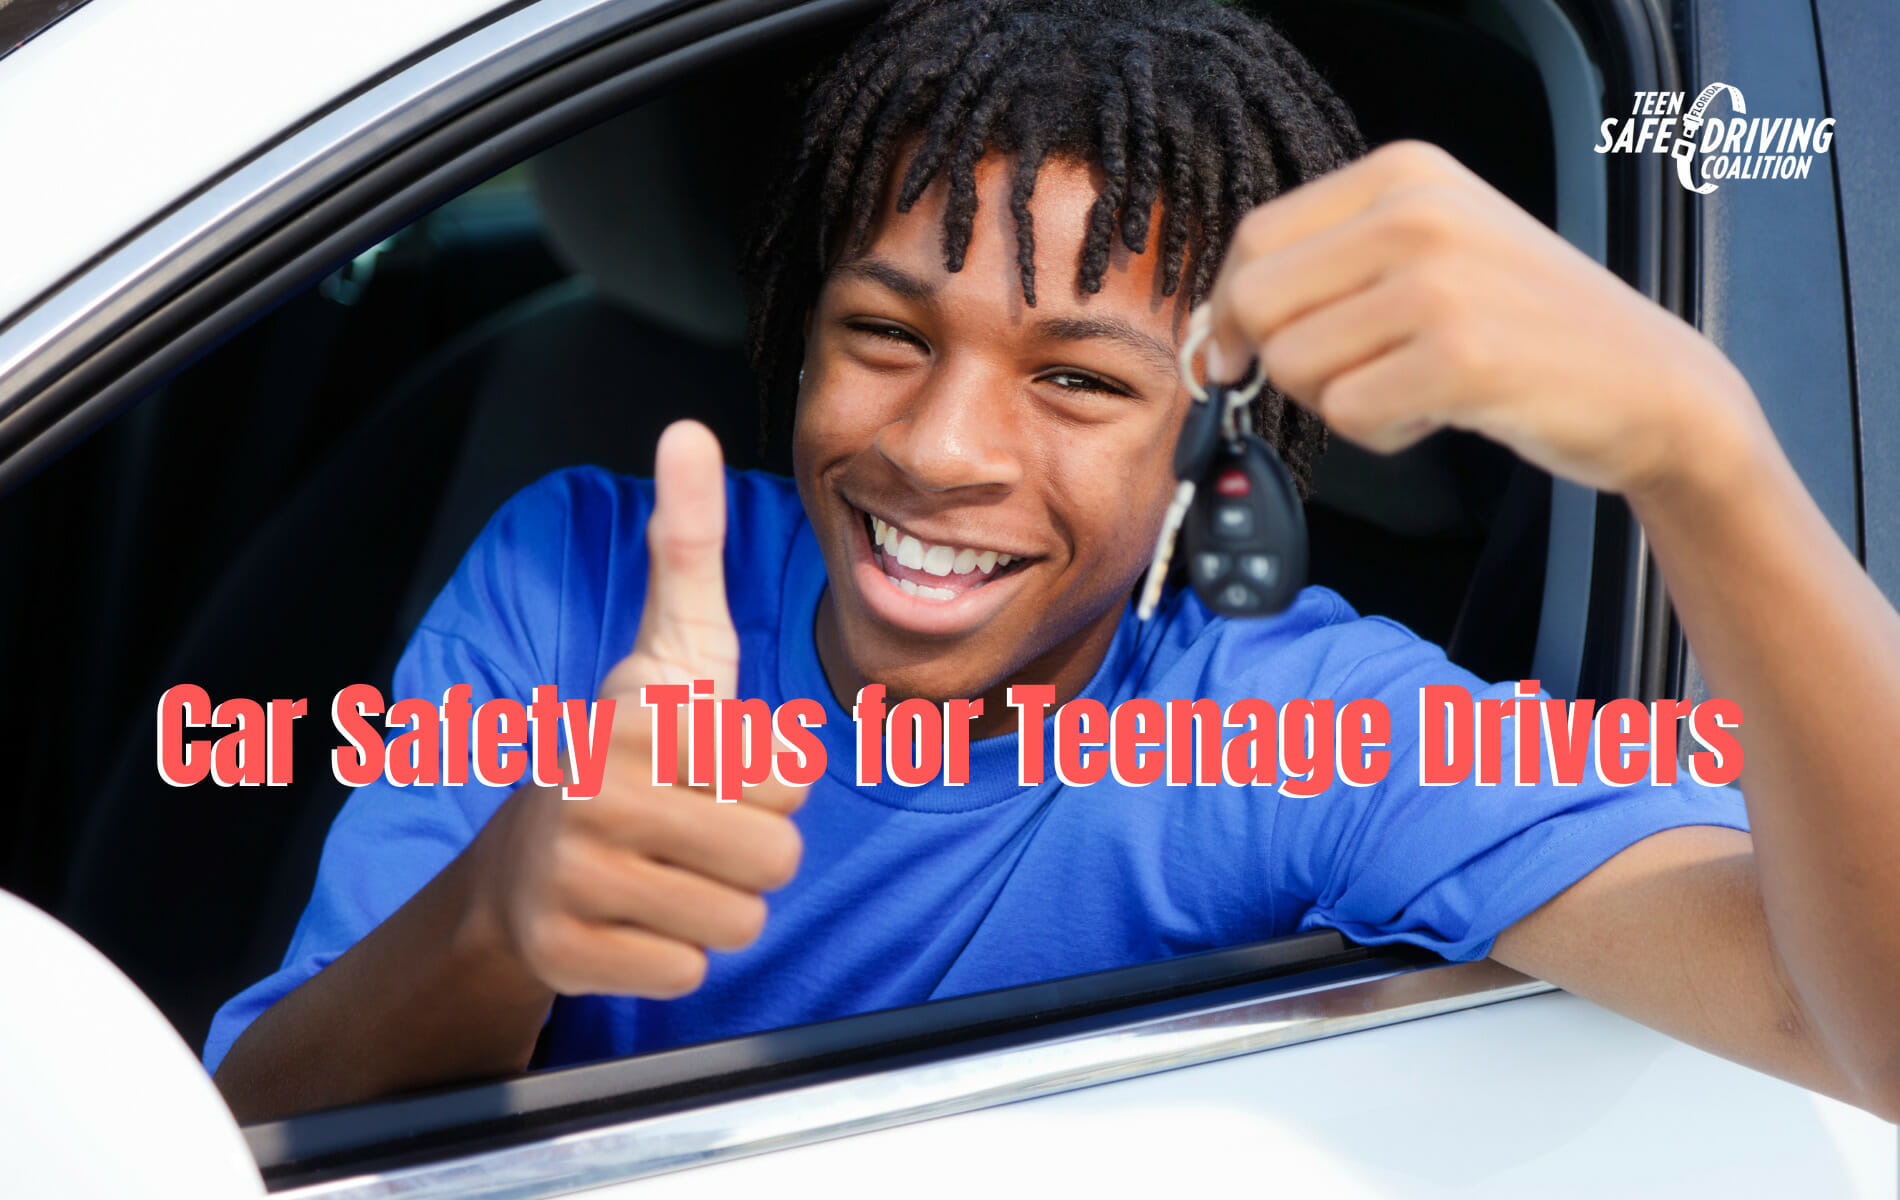 Car Safety Tips for Teenage Drivers